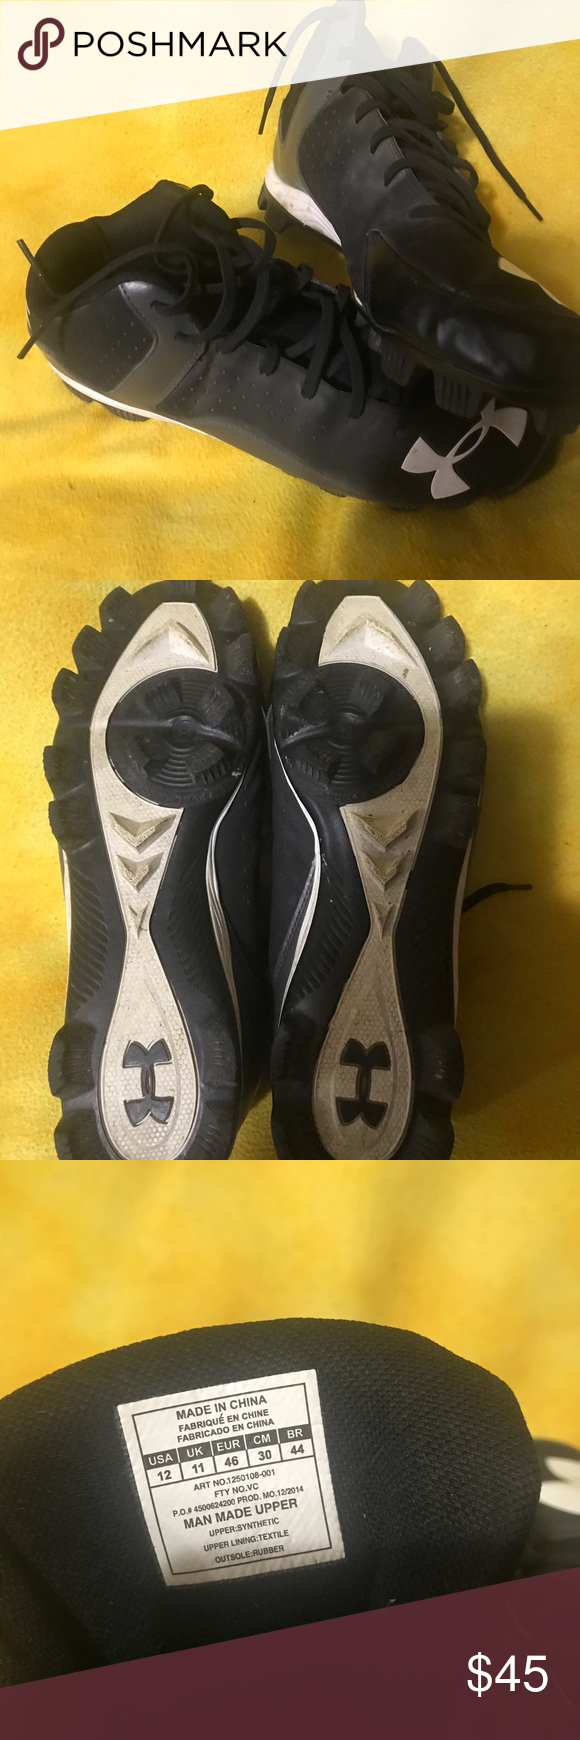 2df2a42cf I just added this listing on Poshmark  Under armor baseball cleats.   shopmycloset  poshmark  fashion  shopping  style  forsale  Other